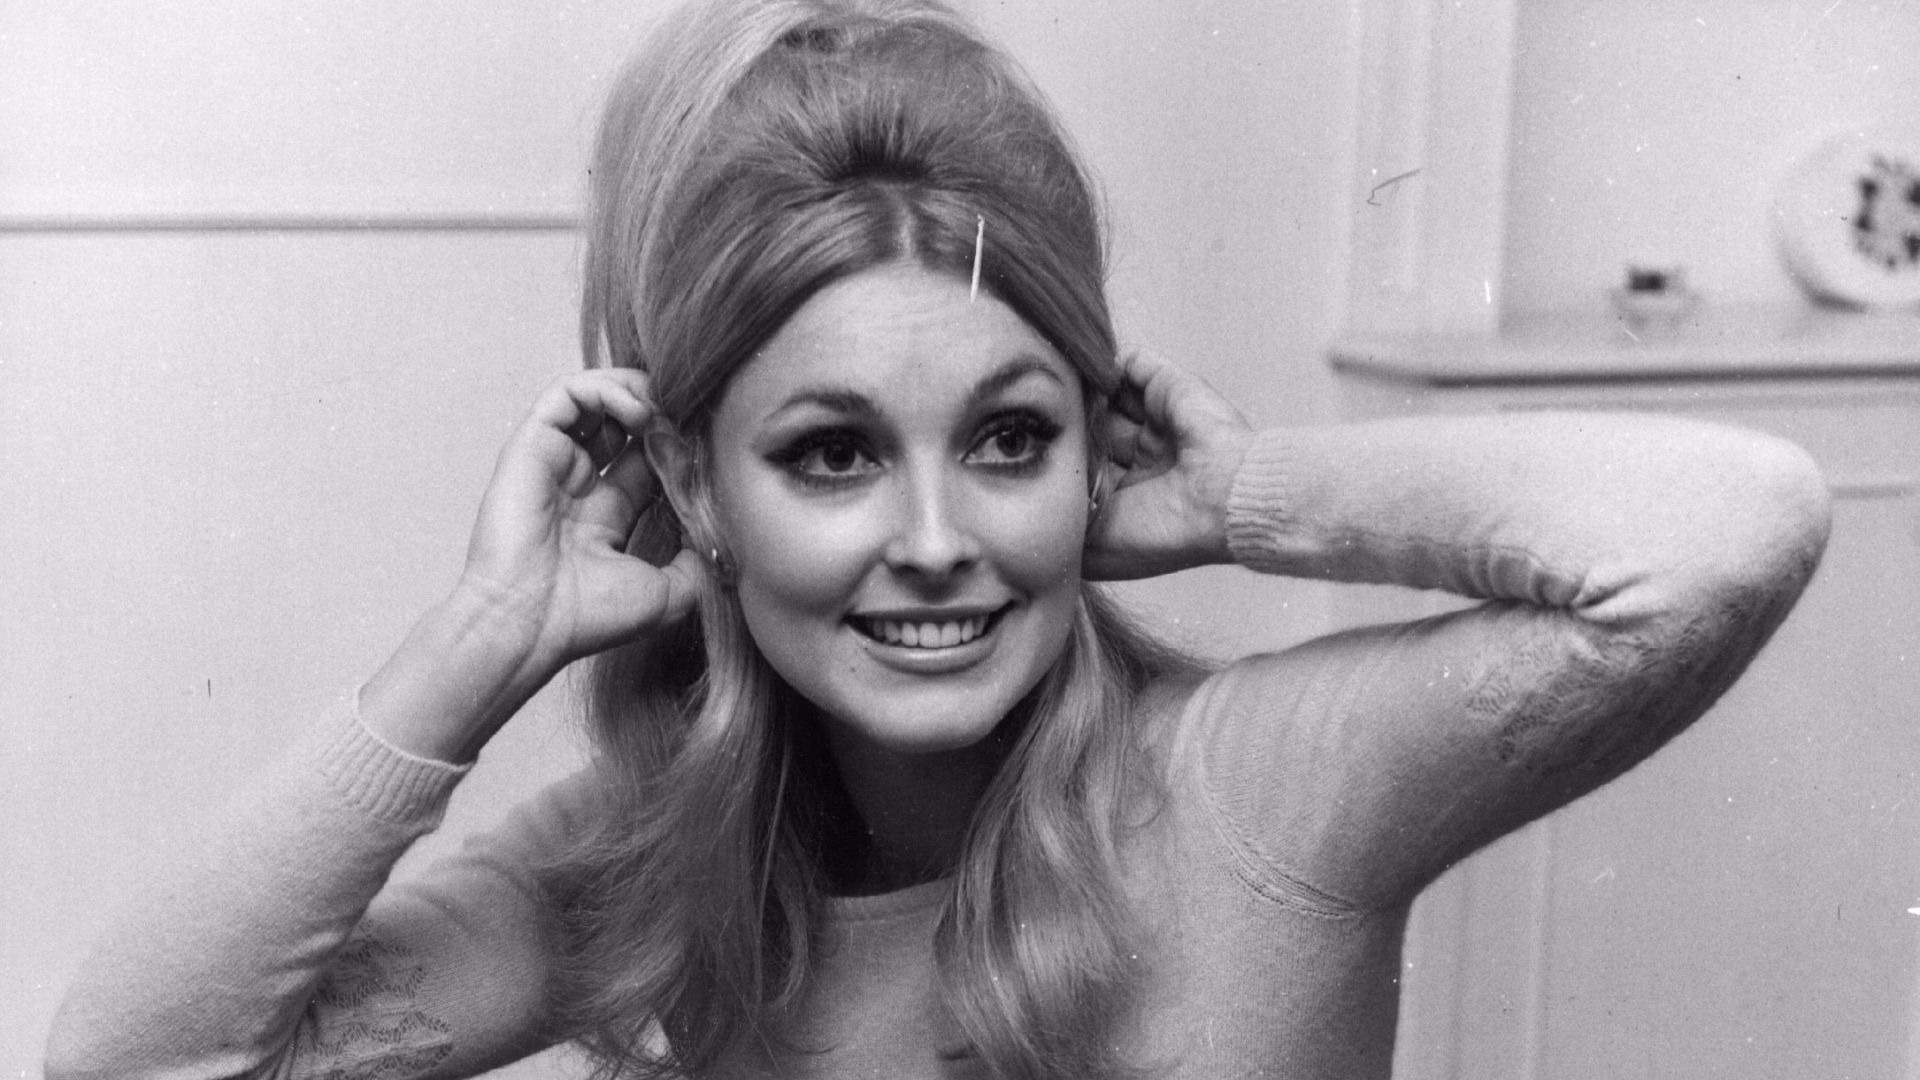 Sharon Tate, one of the Manson family's victims.